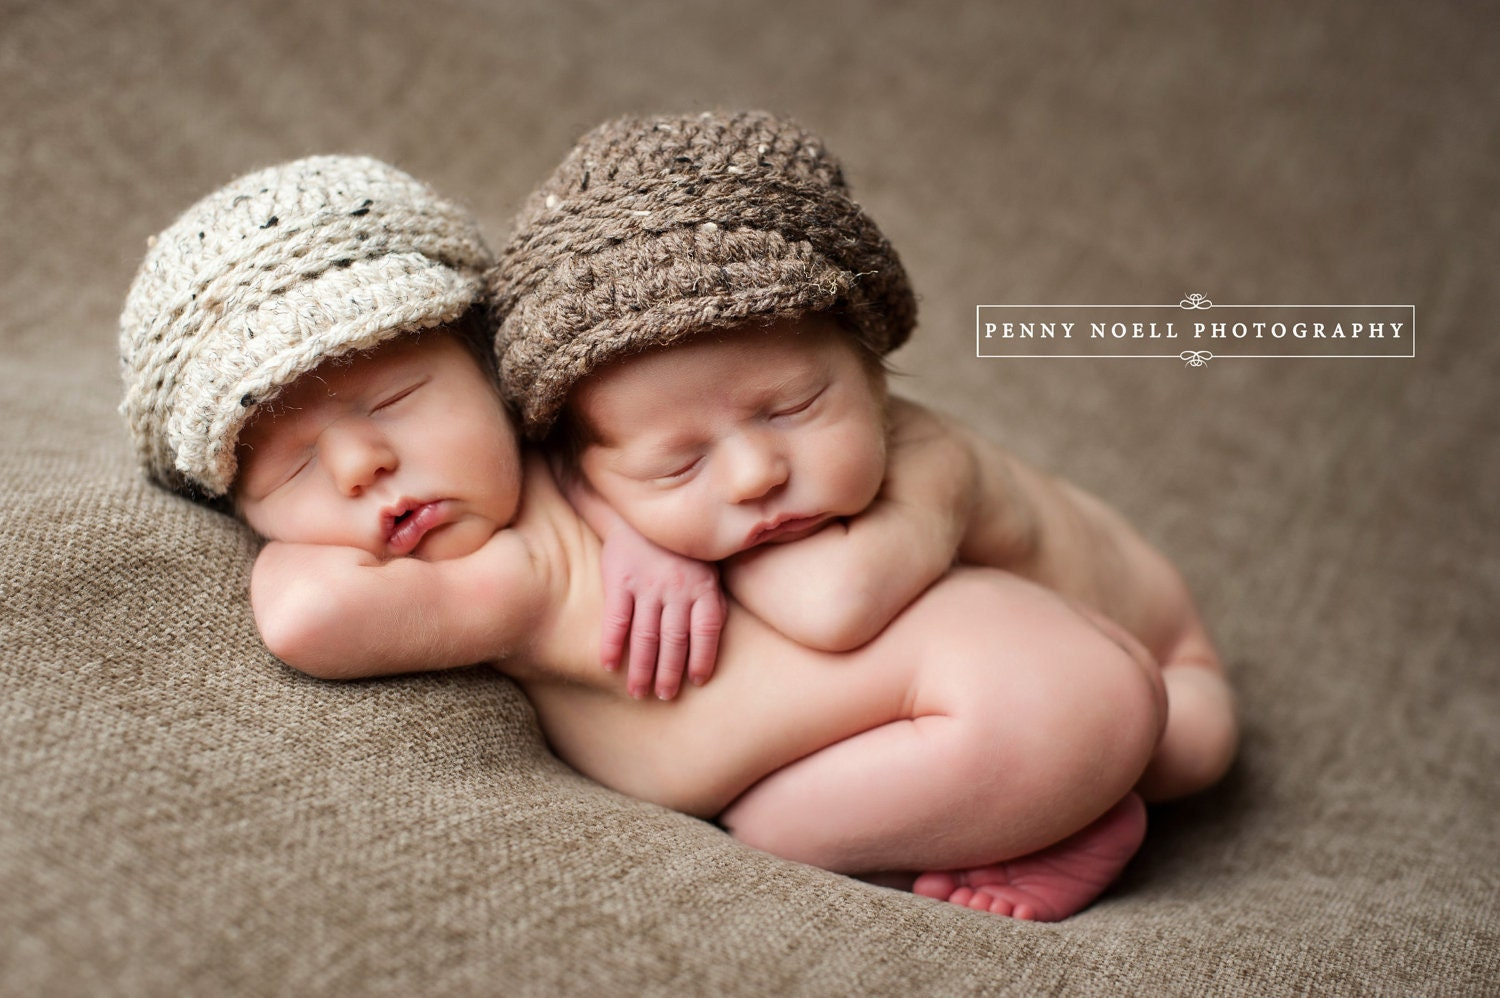 Cute Baby Girl And Boy Twins Twin newborn hat baby girl boyBlack Baby Twins Boy And Girl